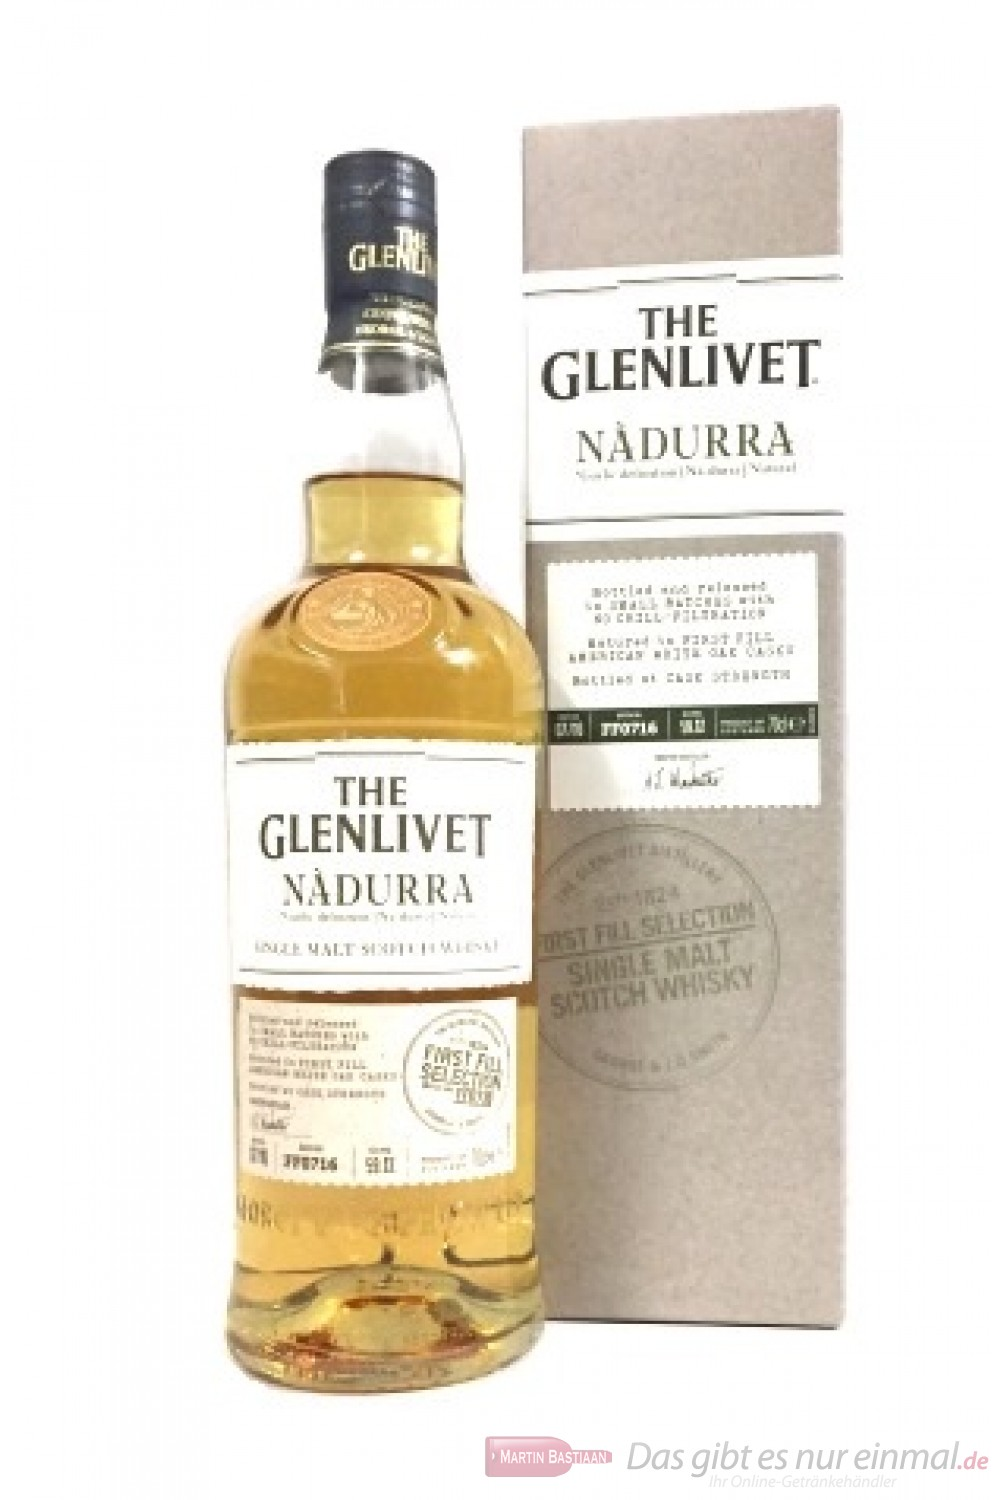 The Glenlivet Nadurra First Fill Selection 59,1